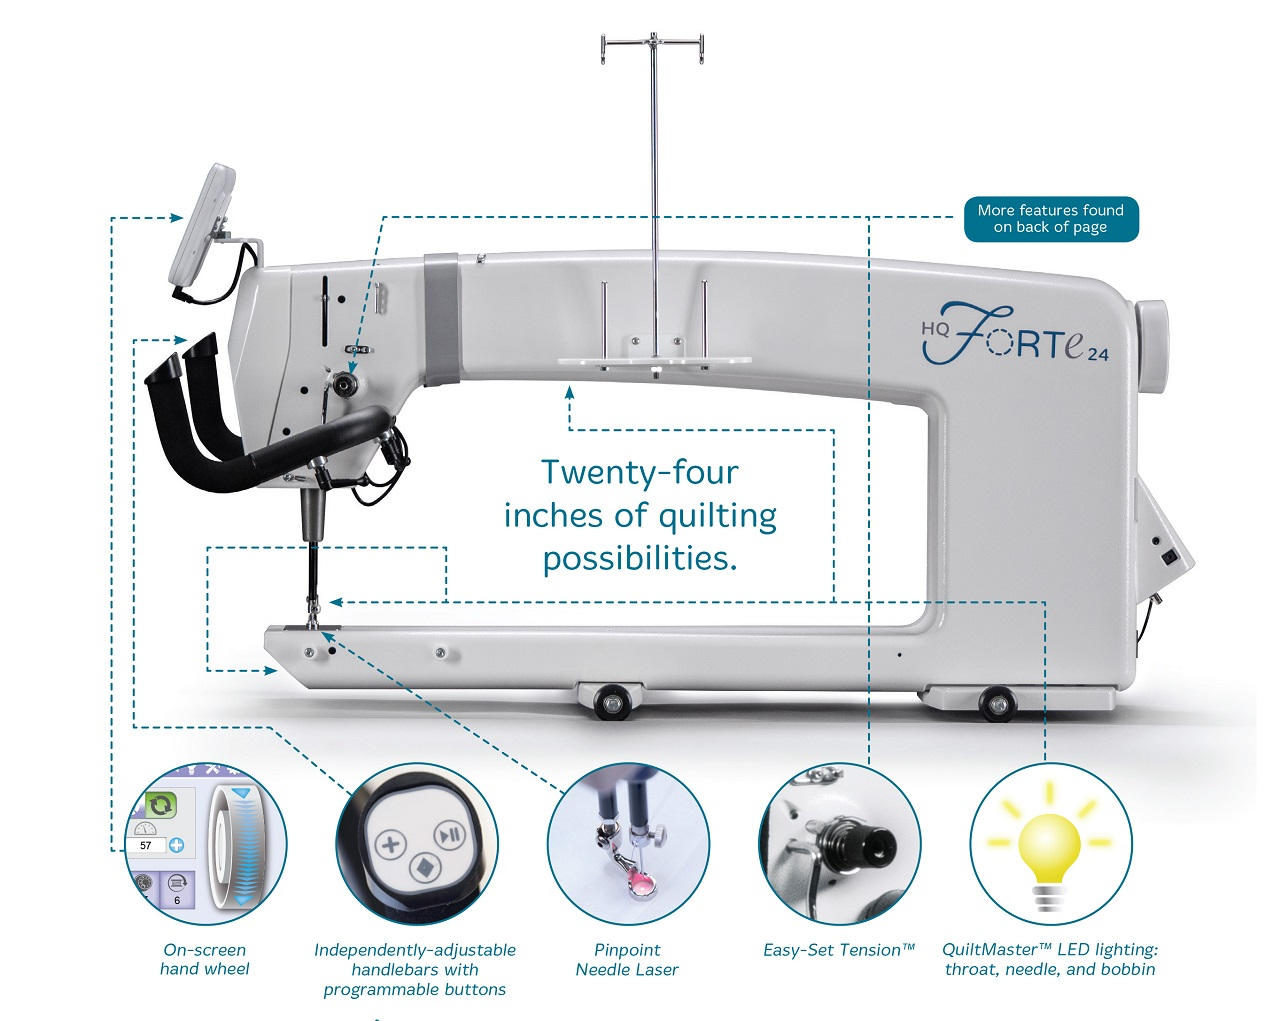 Handi-Quilter Forte 24 Feature Overview